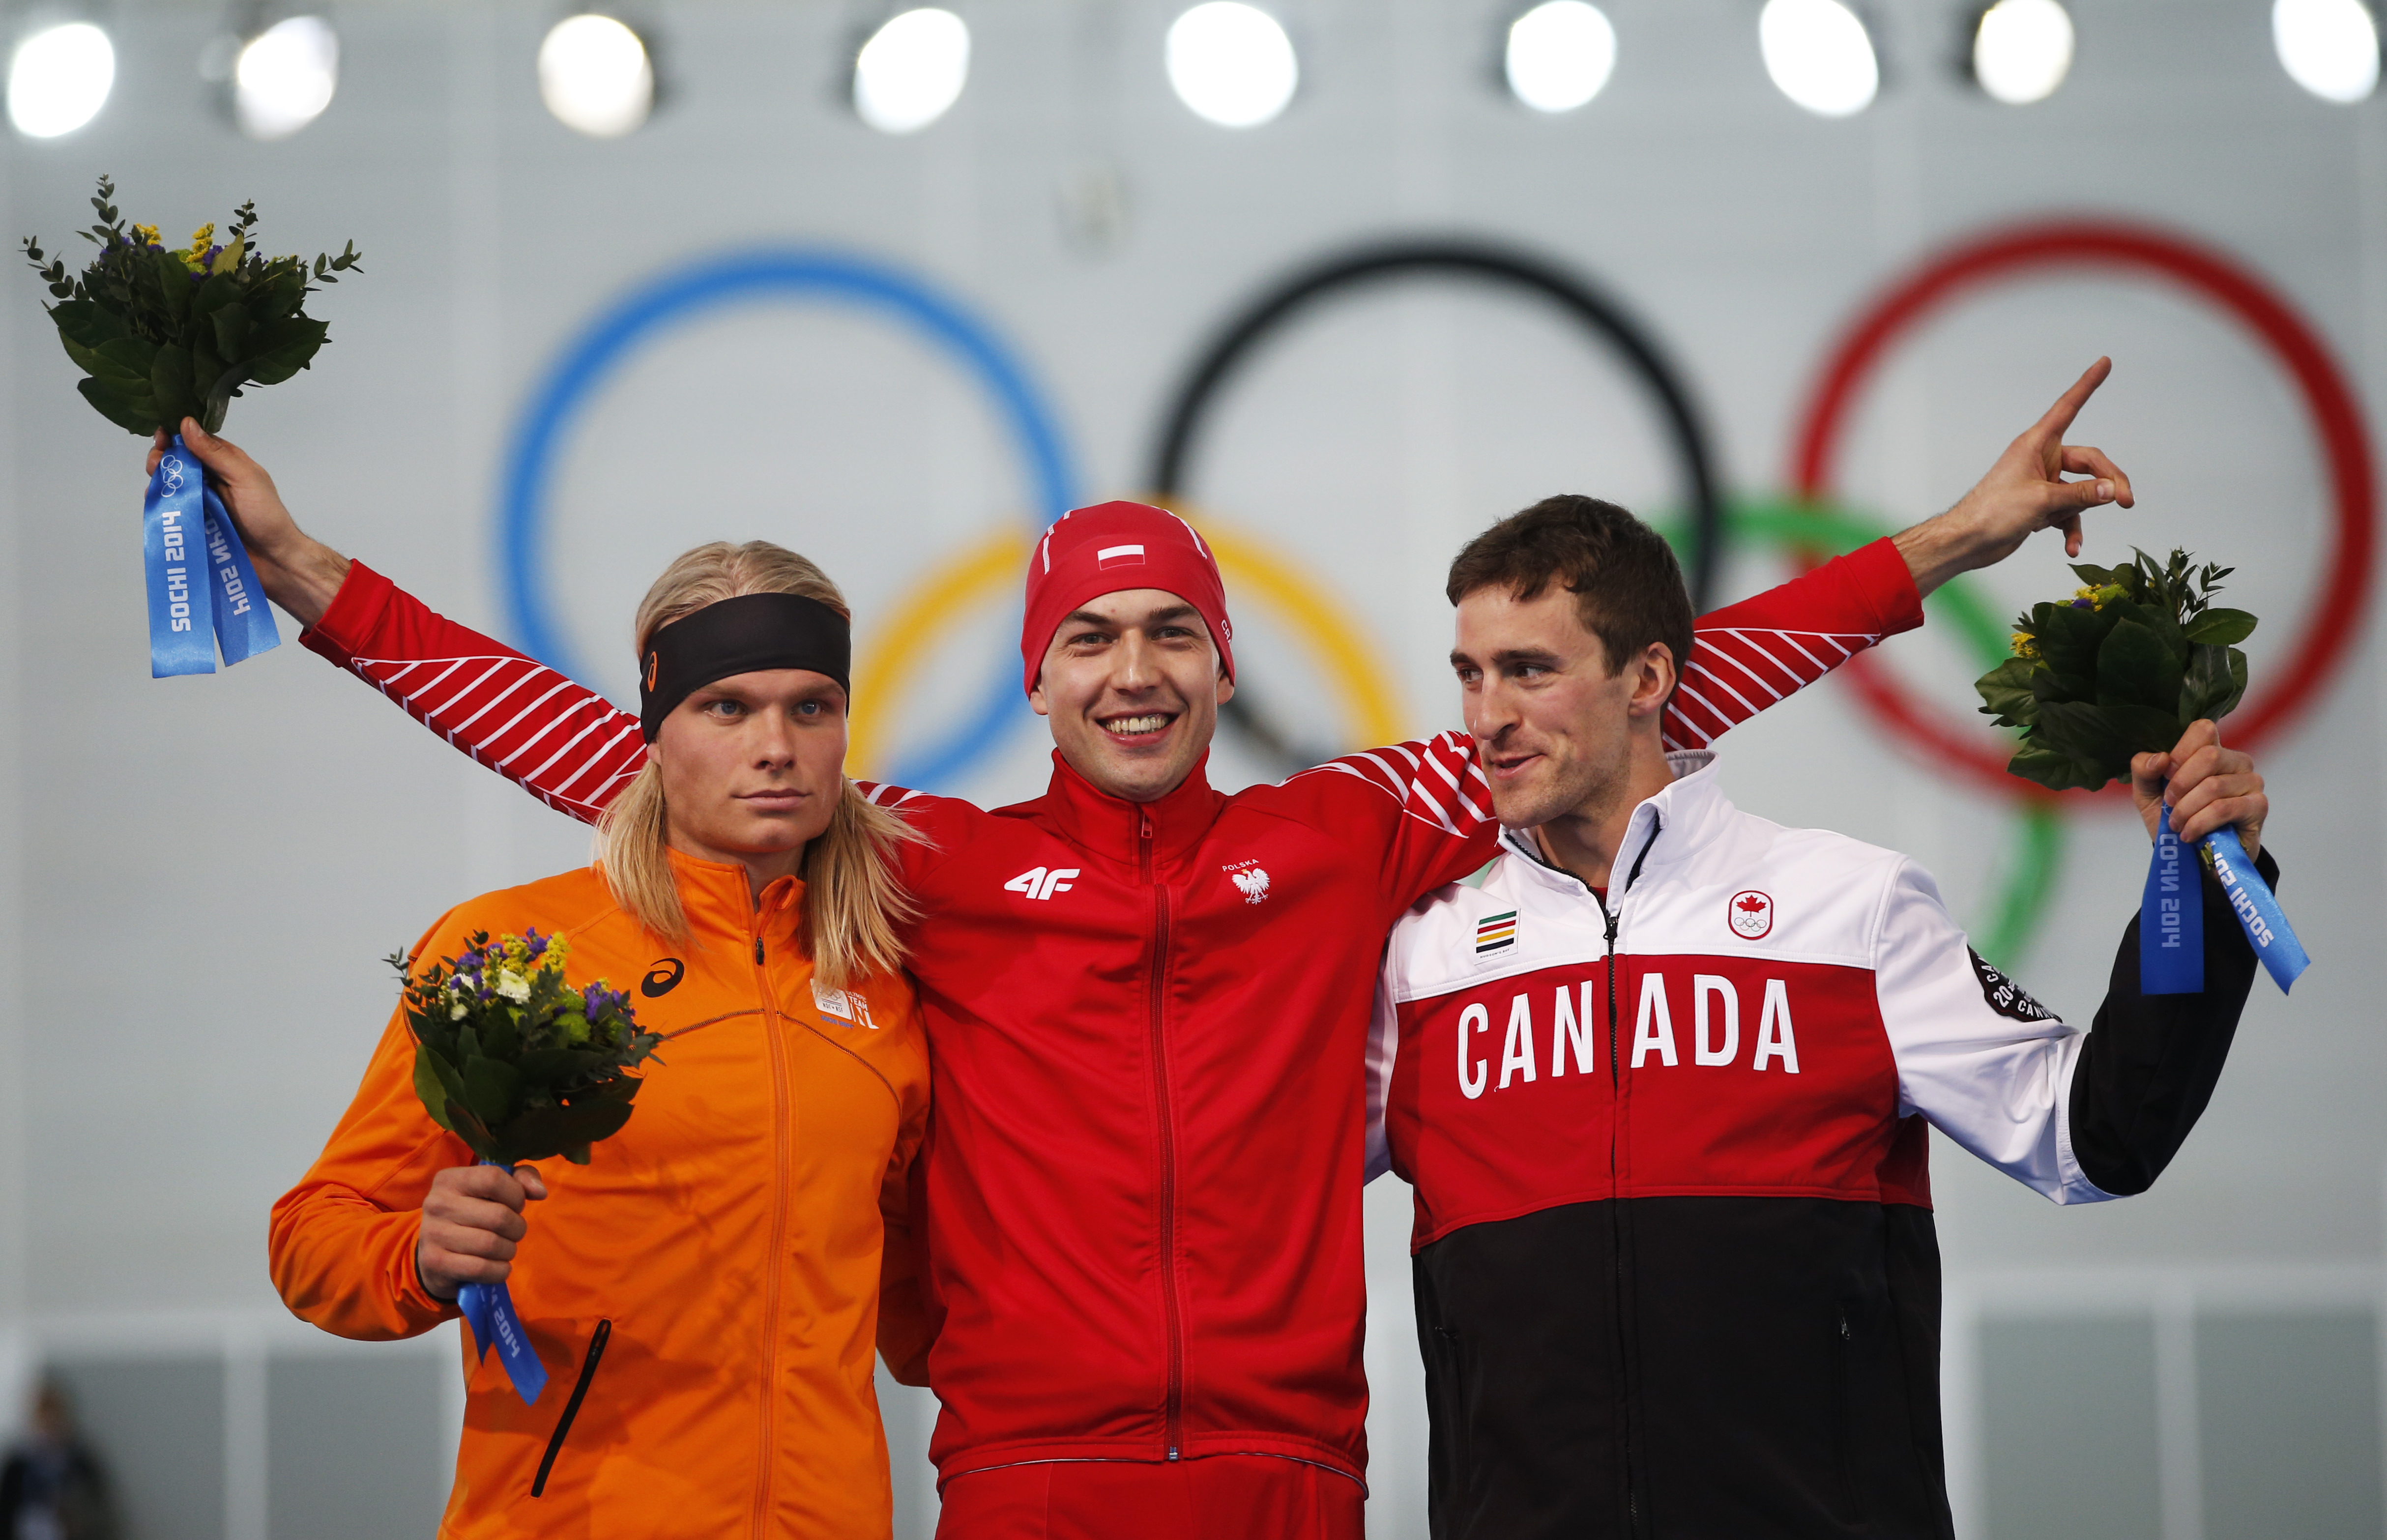 From left to right, silver medallist Koen Verweij of the Netherlands, gold medallist Poland's Zbigniew Brodka and bronze medallist Canada's Denny Morrison stand on the podium during the flower ceremony for the men's 1,500-meter speedskating race at the Adler Arena Skating Center during the 2014 Winter Olympics in Sochi, Russia, Saturday, Feb. 15, 2014. Verweij lost the gold medal by three thousandth of a second. (AP Photo/Pavel Golovkin)